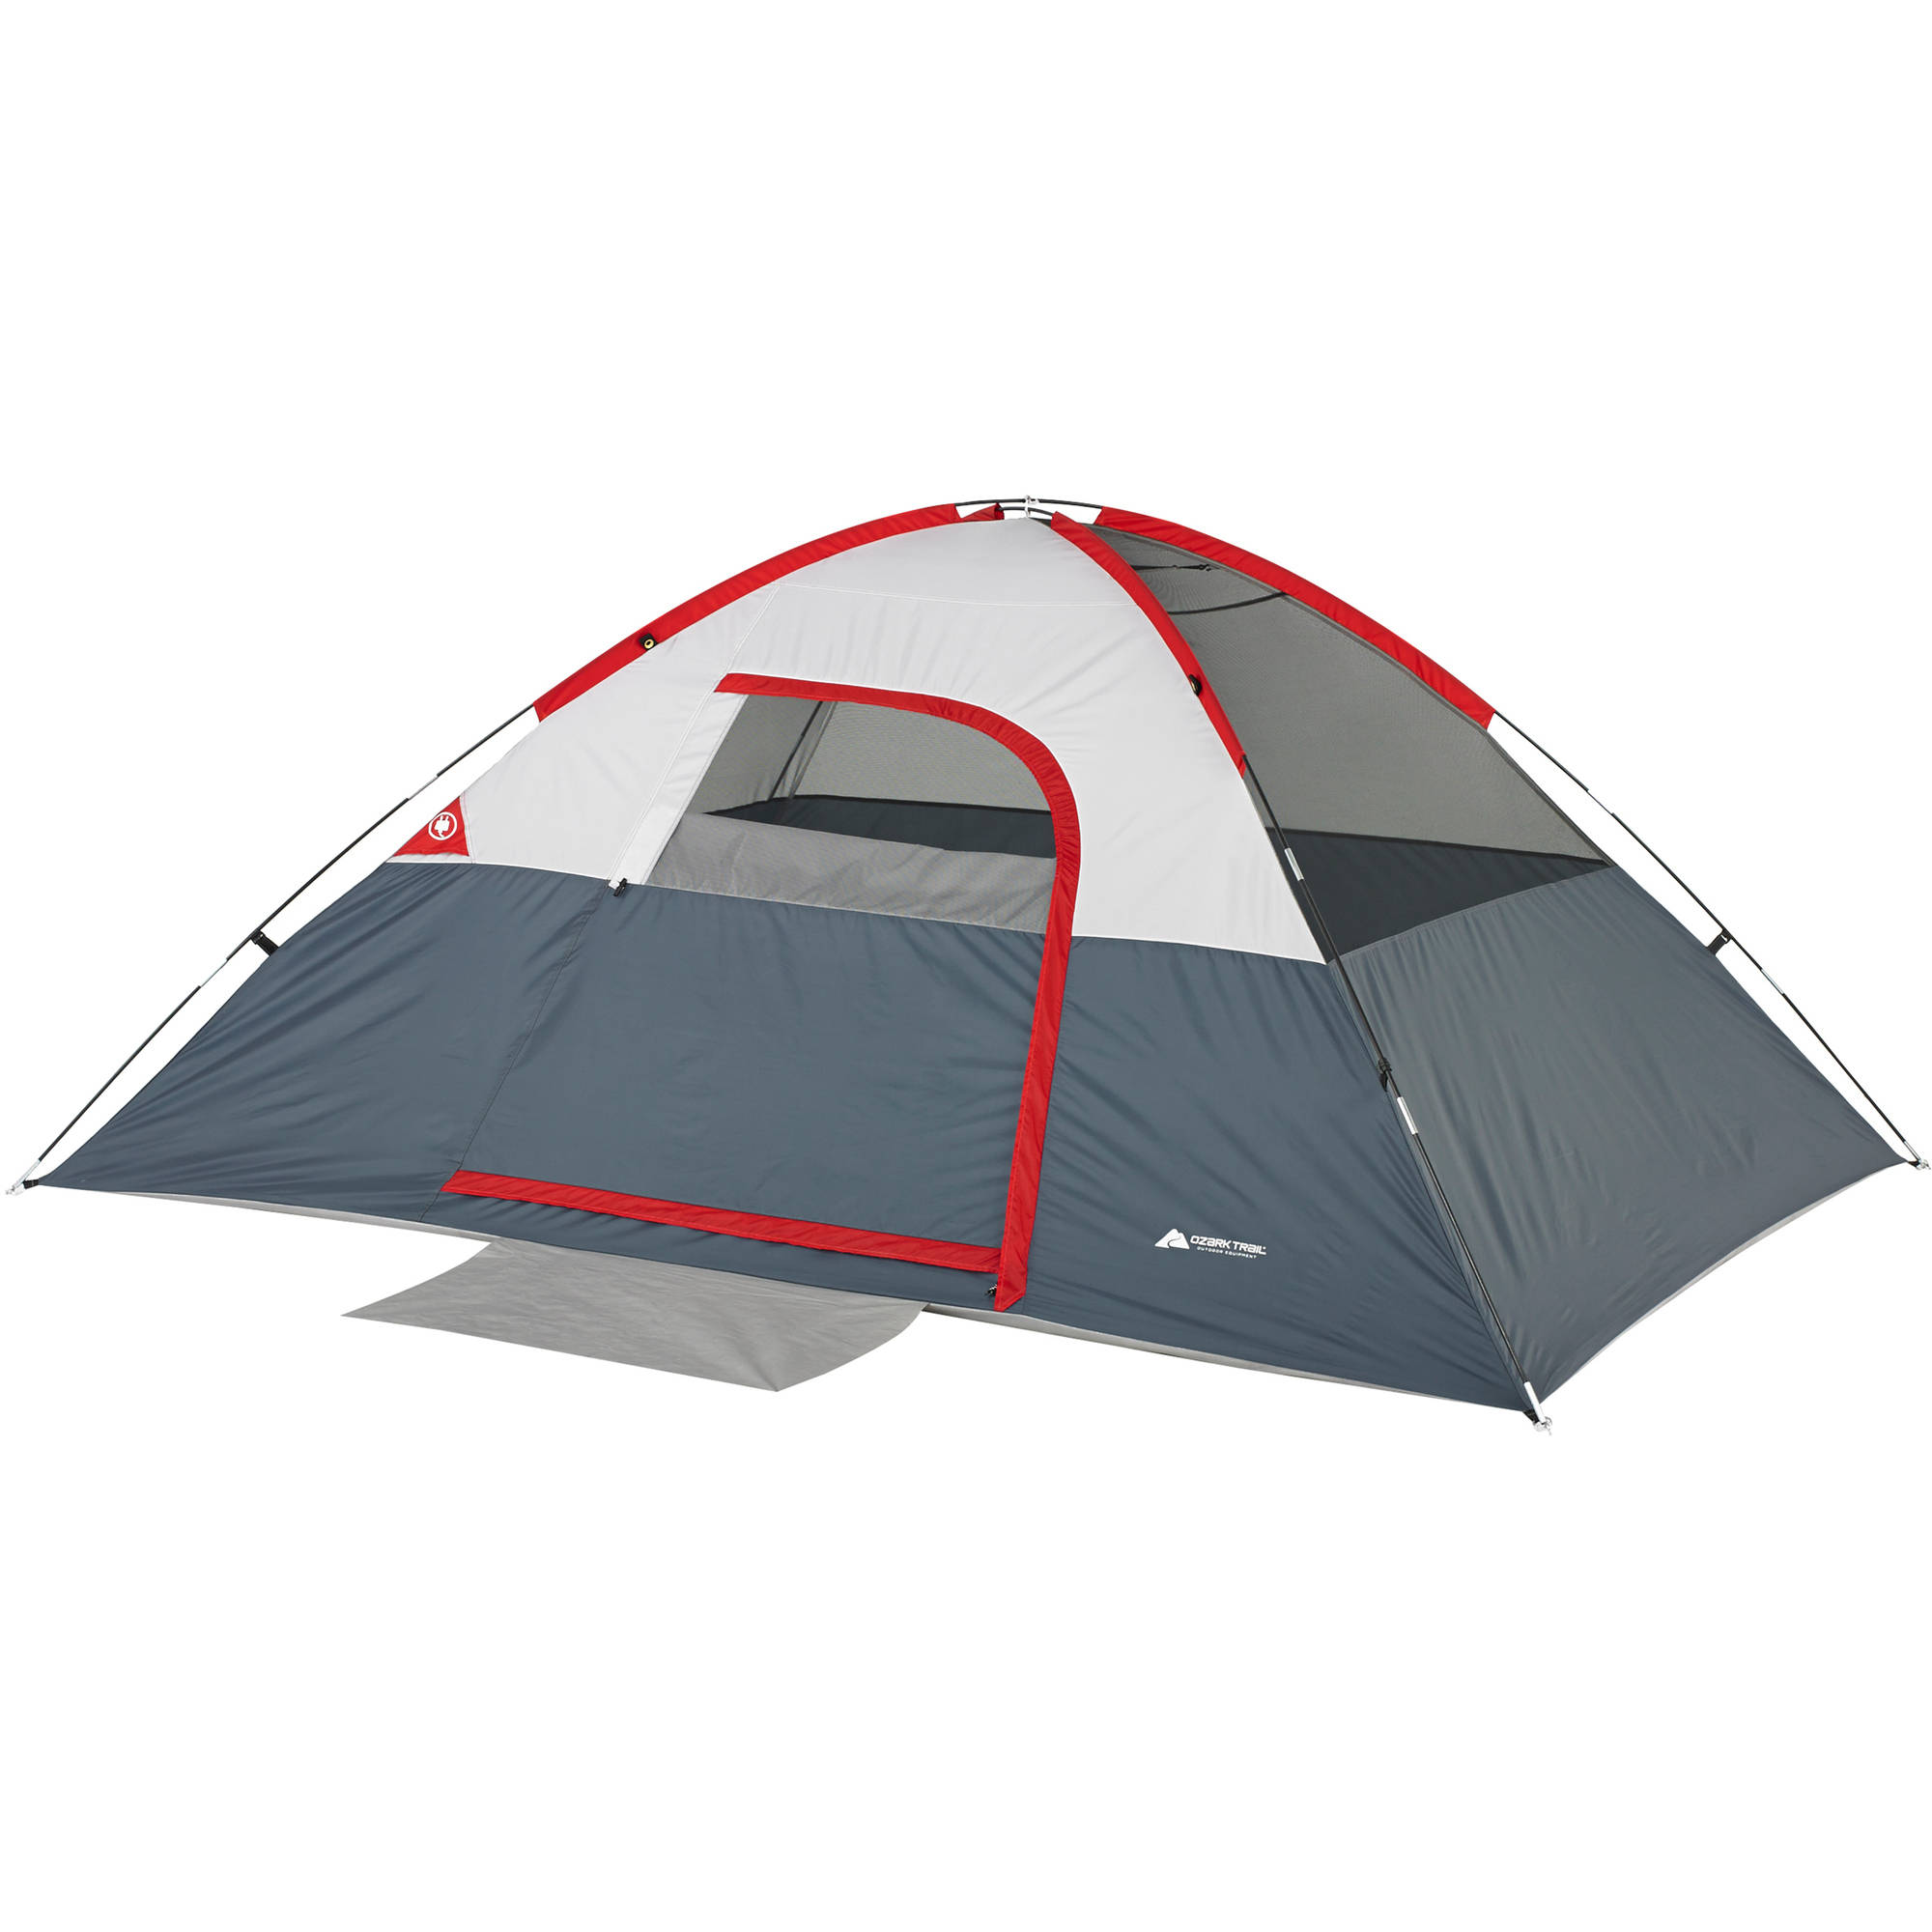 Ozark Trail 4 Person 9x7 Tent Image 7 of 10  sc 1 st  Walmart & Ozark Trail 4 Person 9x7 Tent - Walmart.com